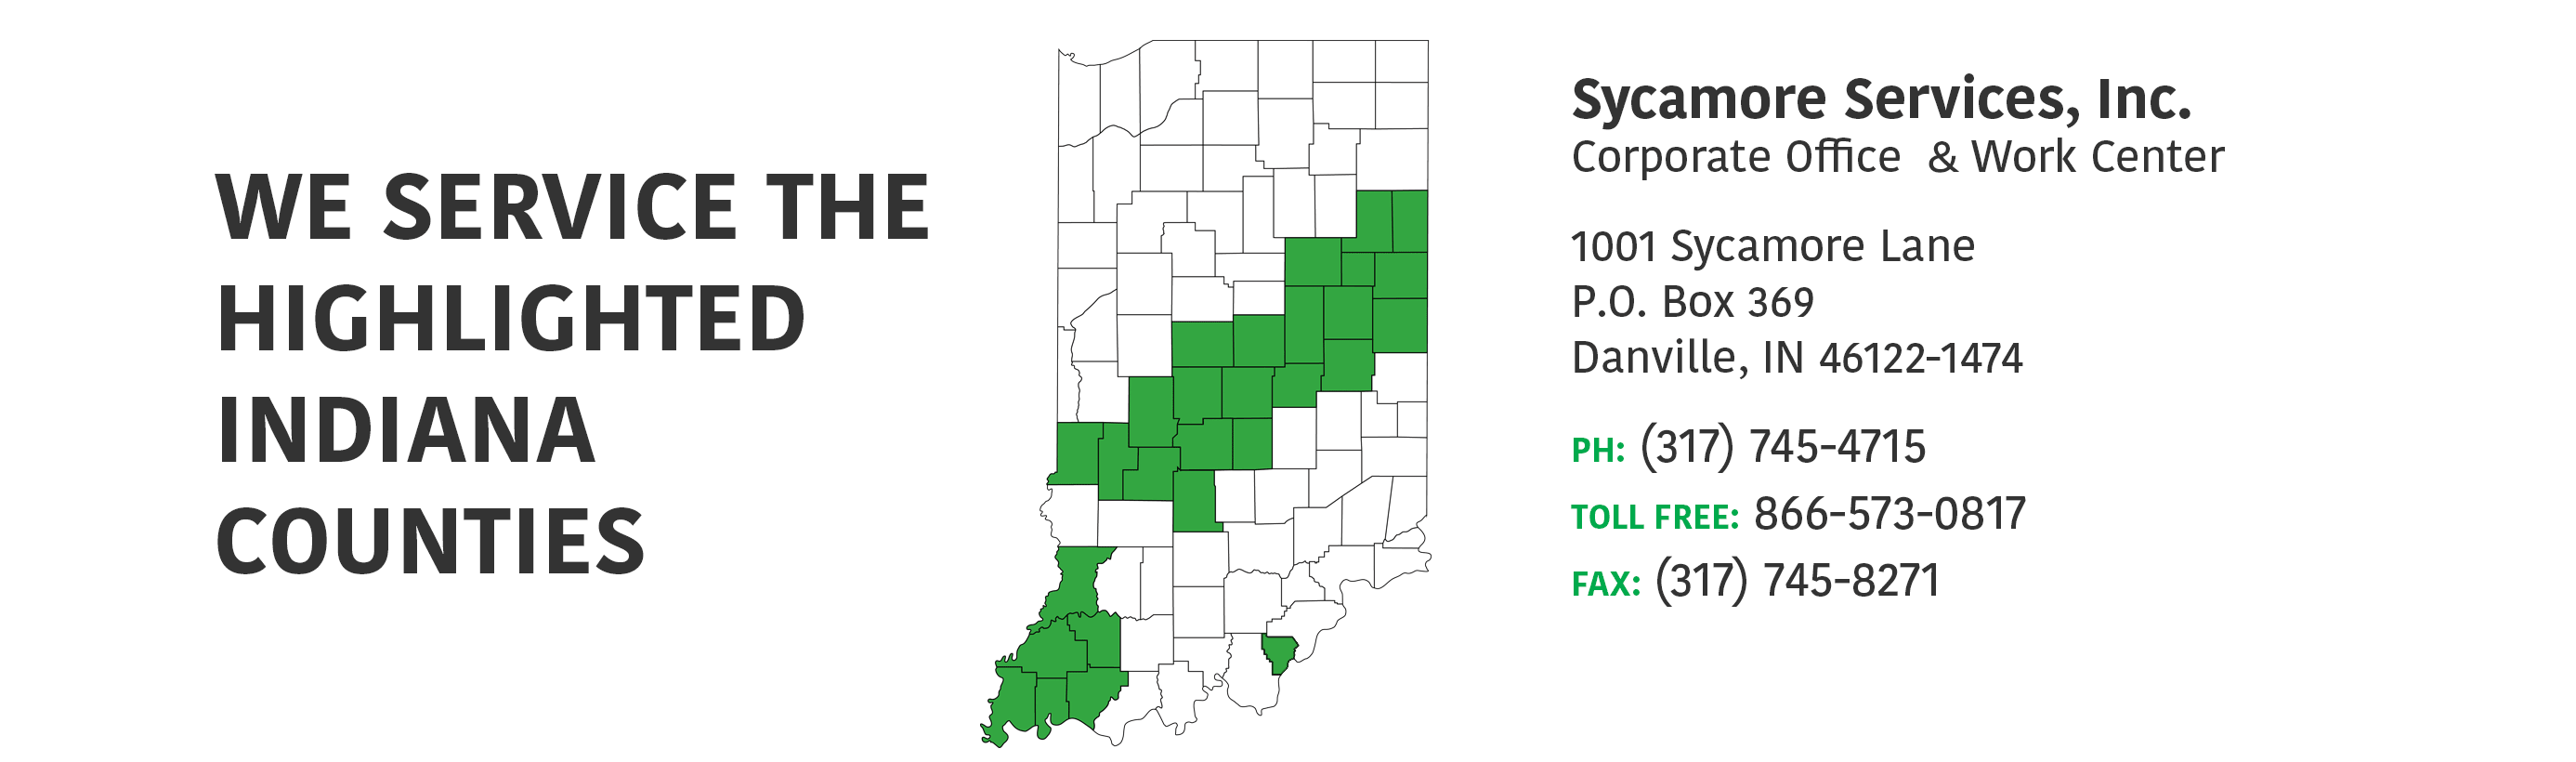 Indiana Services areas map